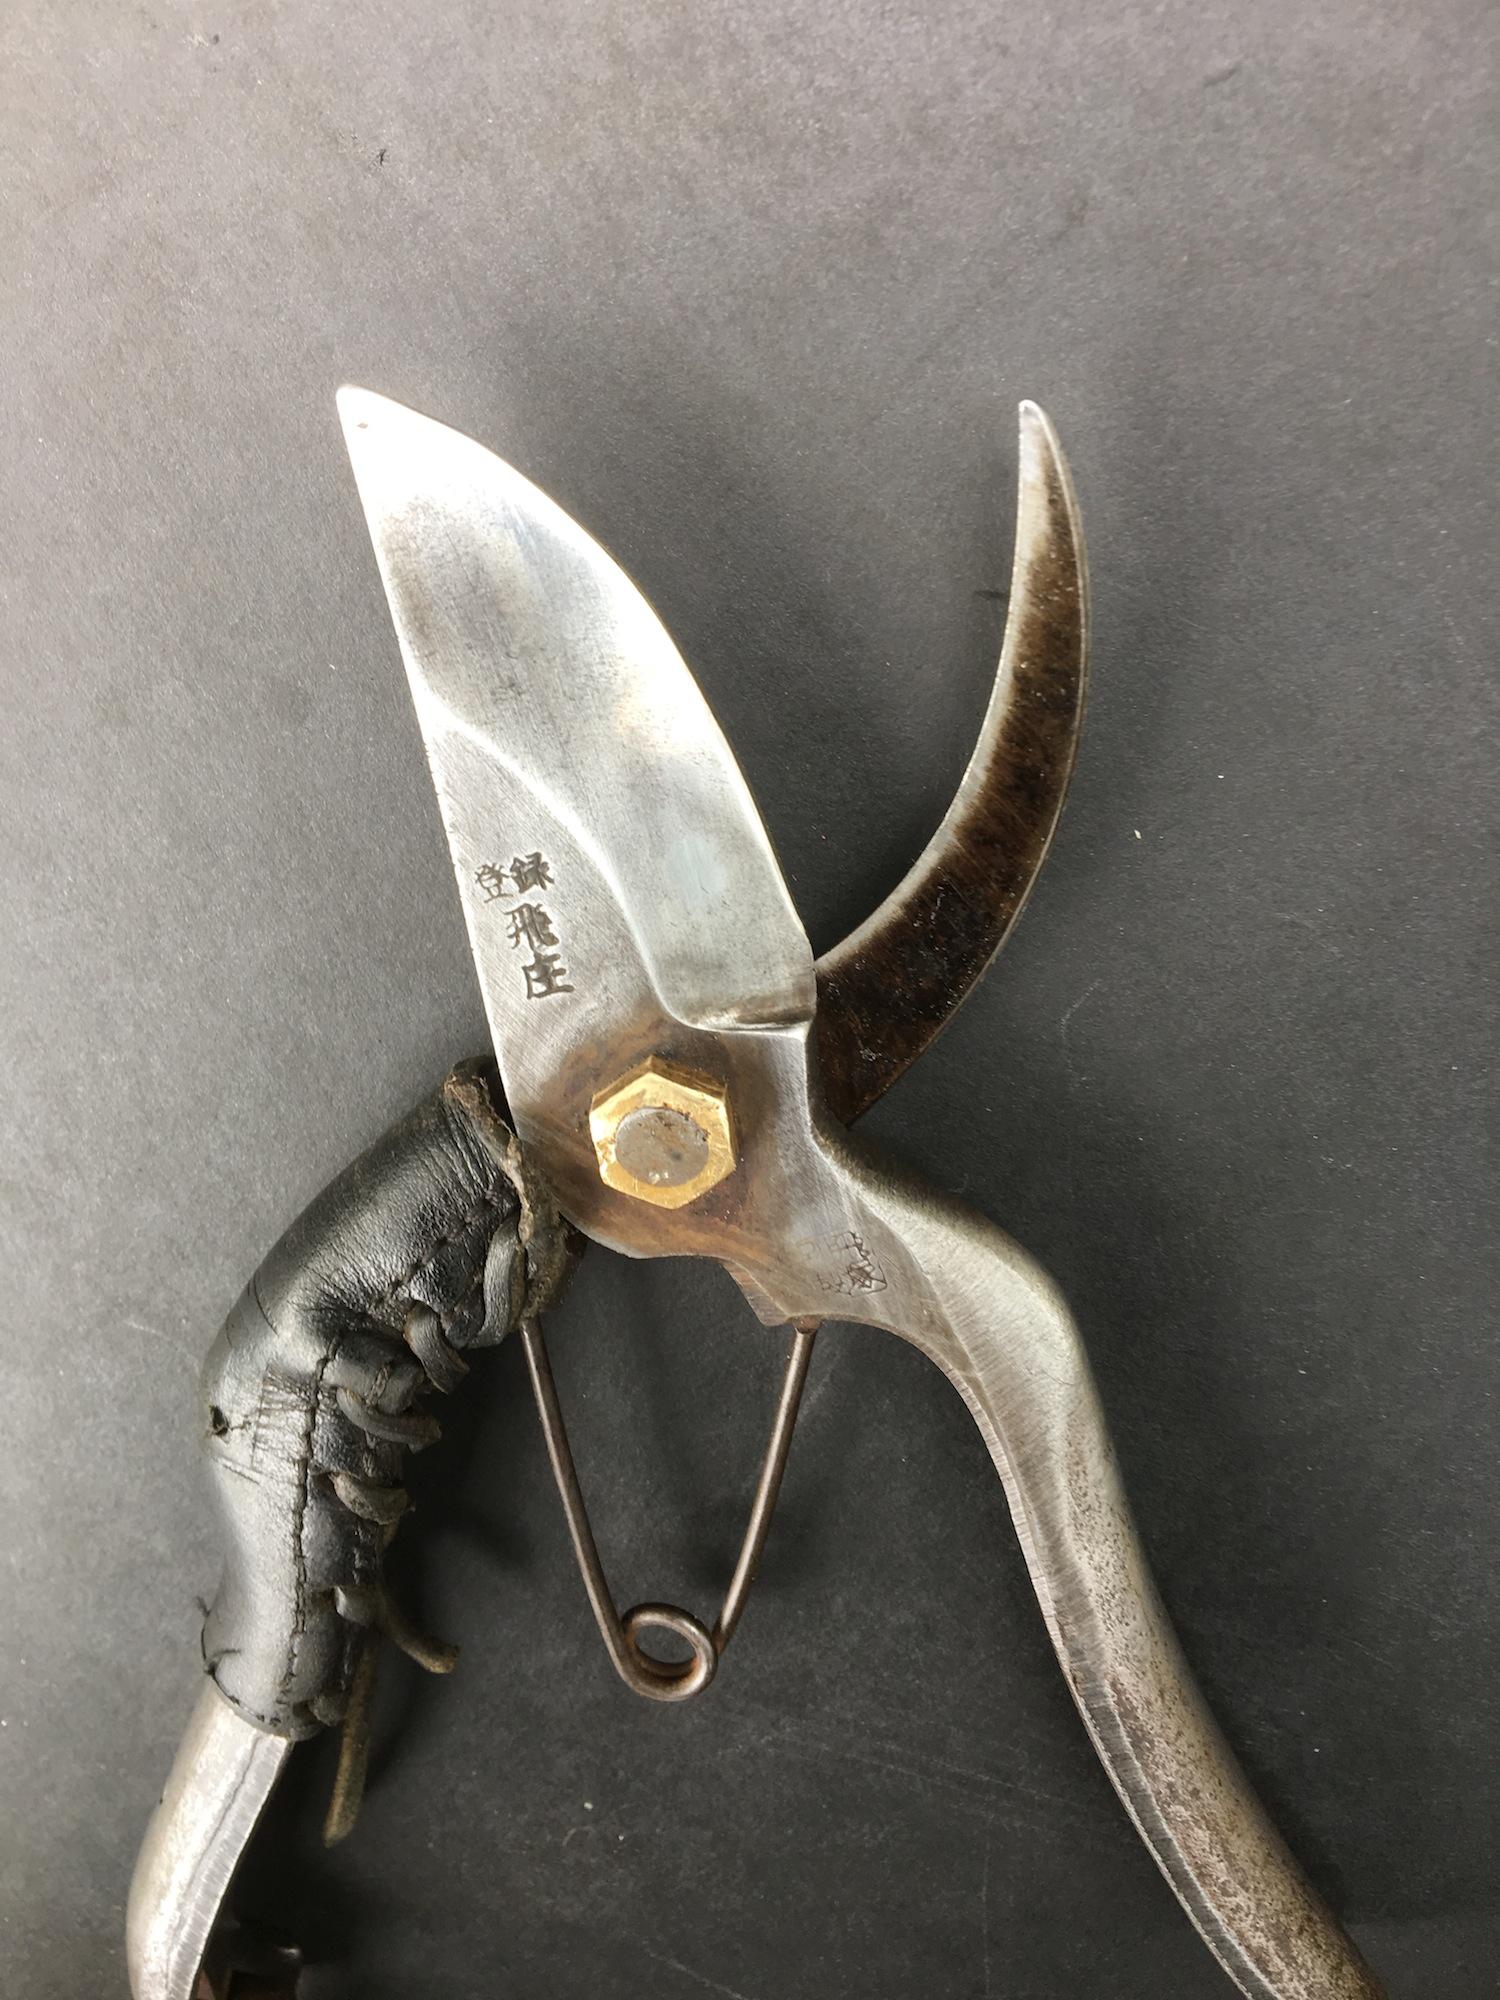 Scissor repair low res after.JPG